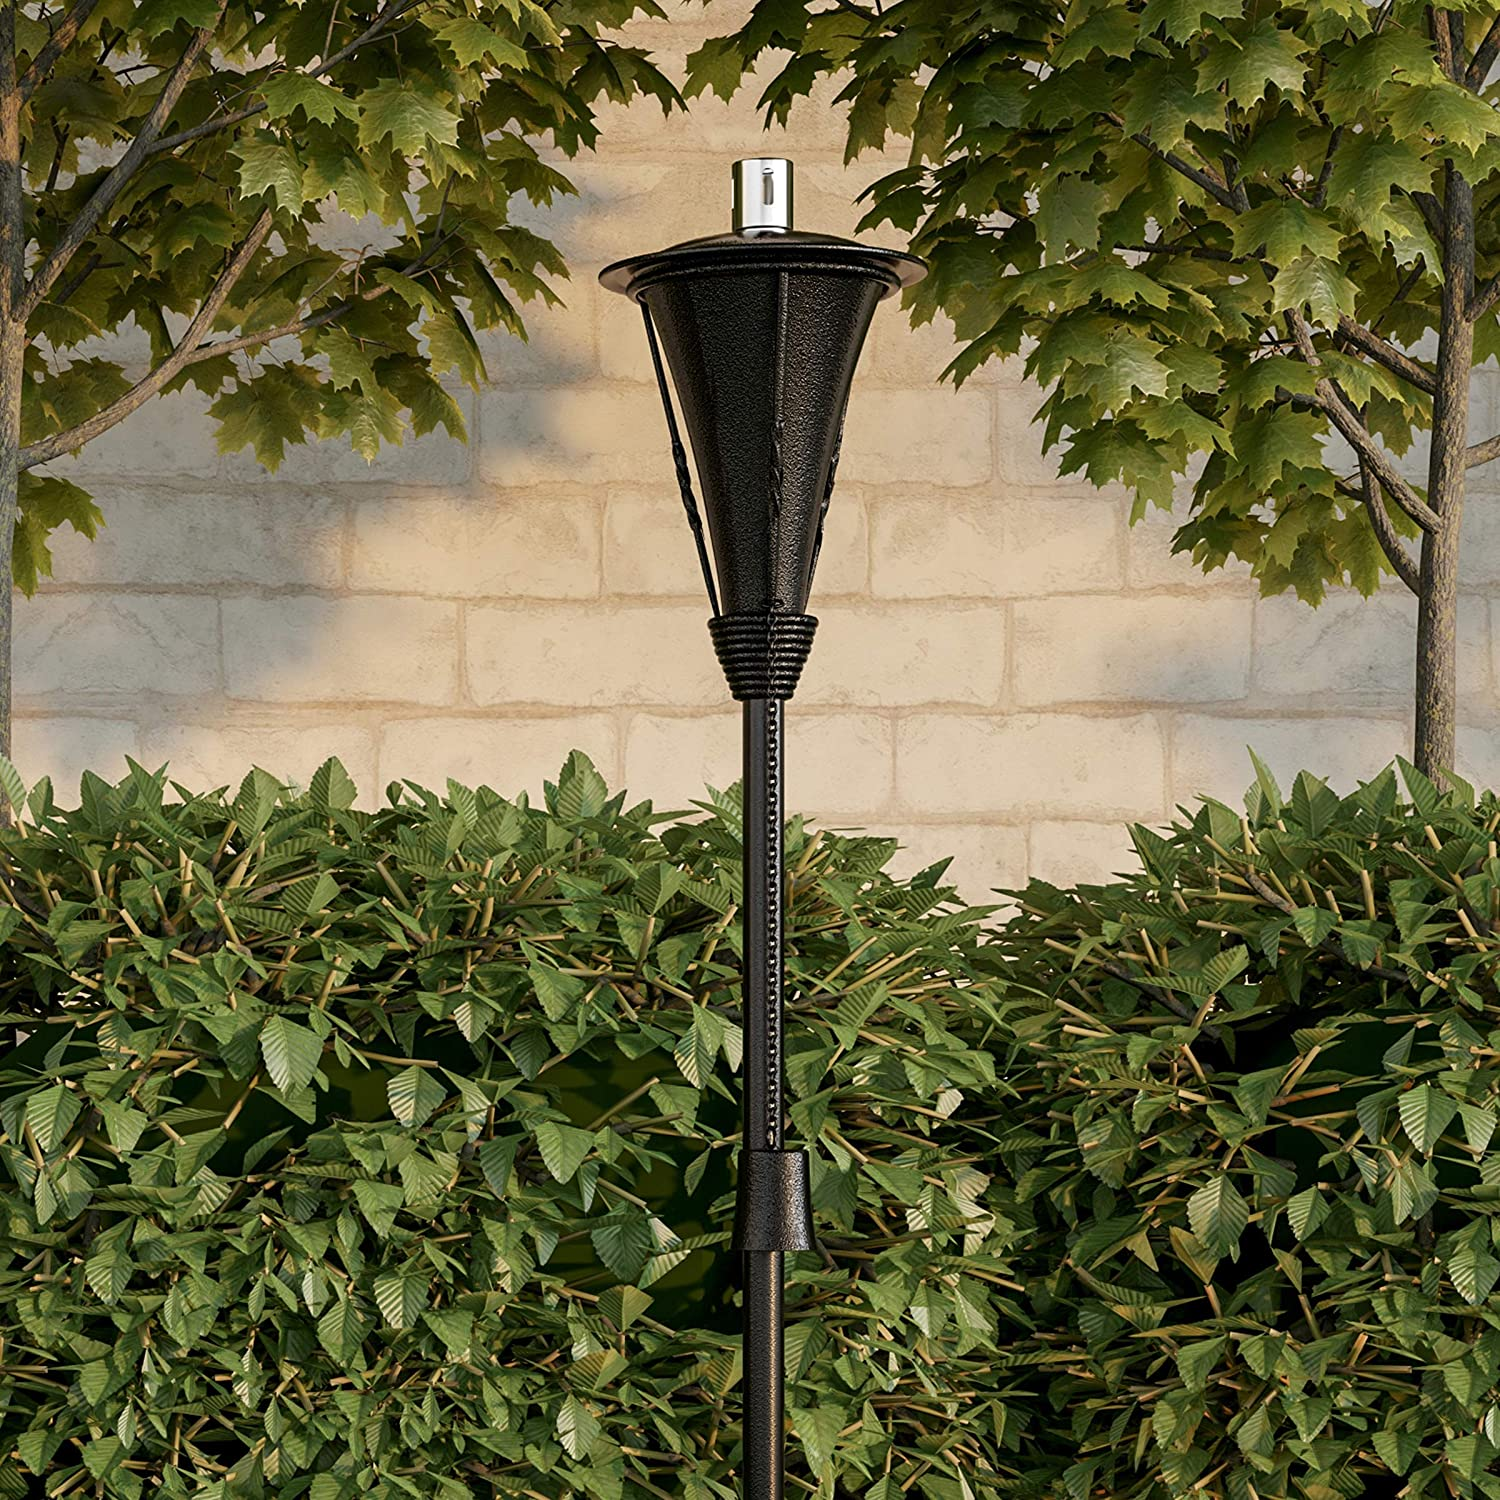 "Pure Garden 50-222 Outdoor Torch Lamp-45"" Metal Fuel Canister Flame Light for Citronella with Fiberglass Wick, Adjustable Height for Backyard, Patio"